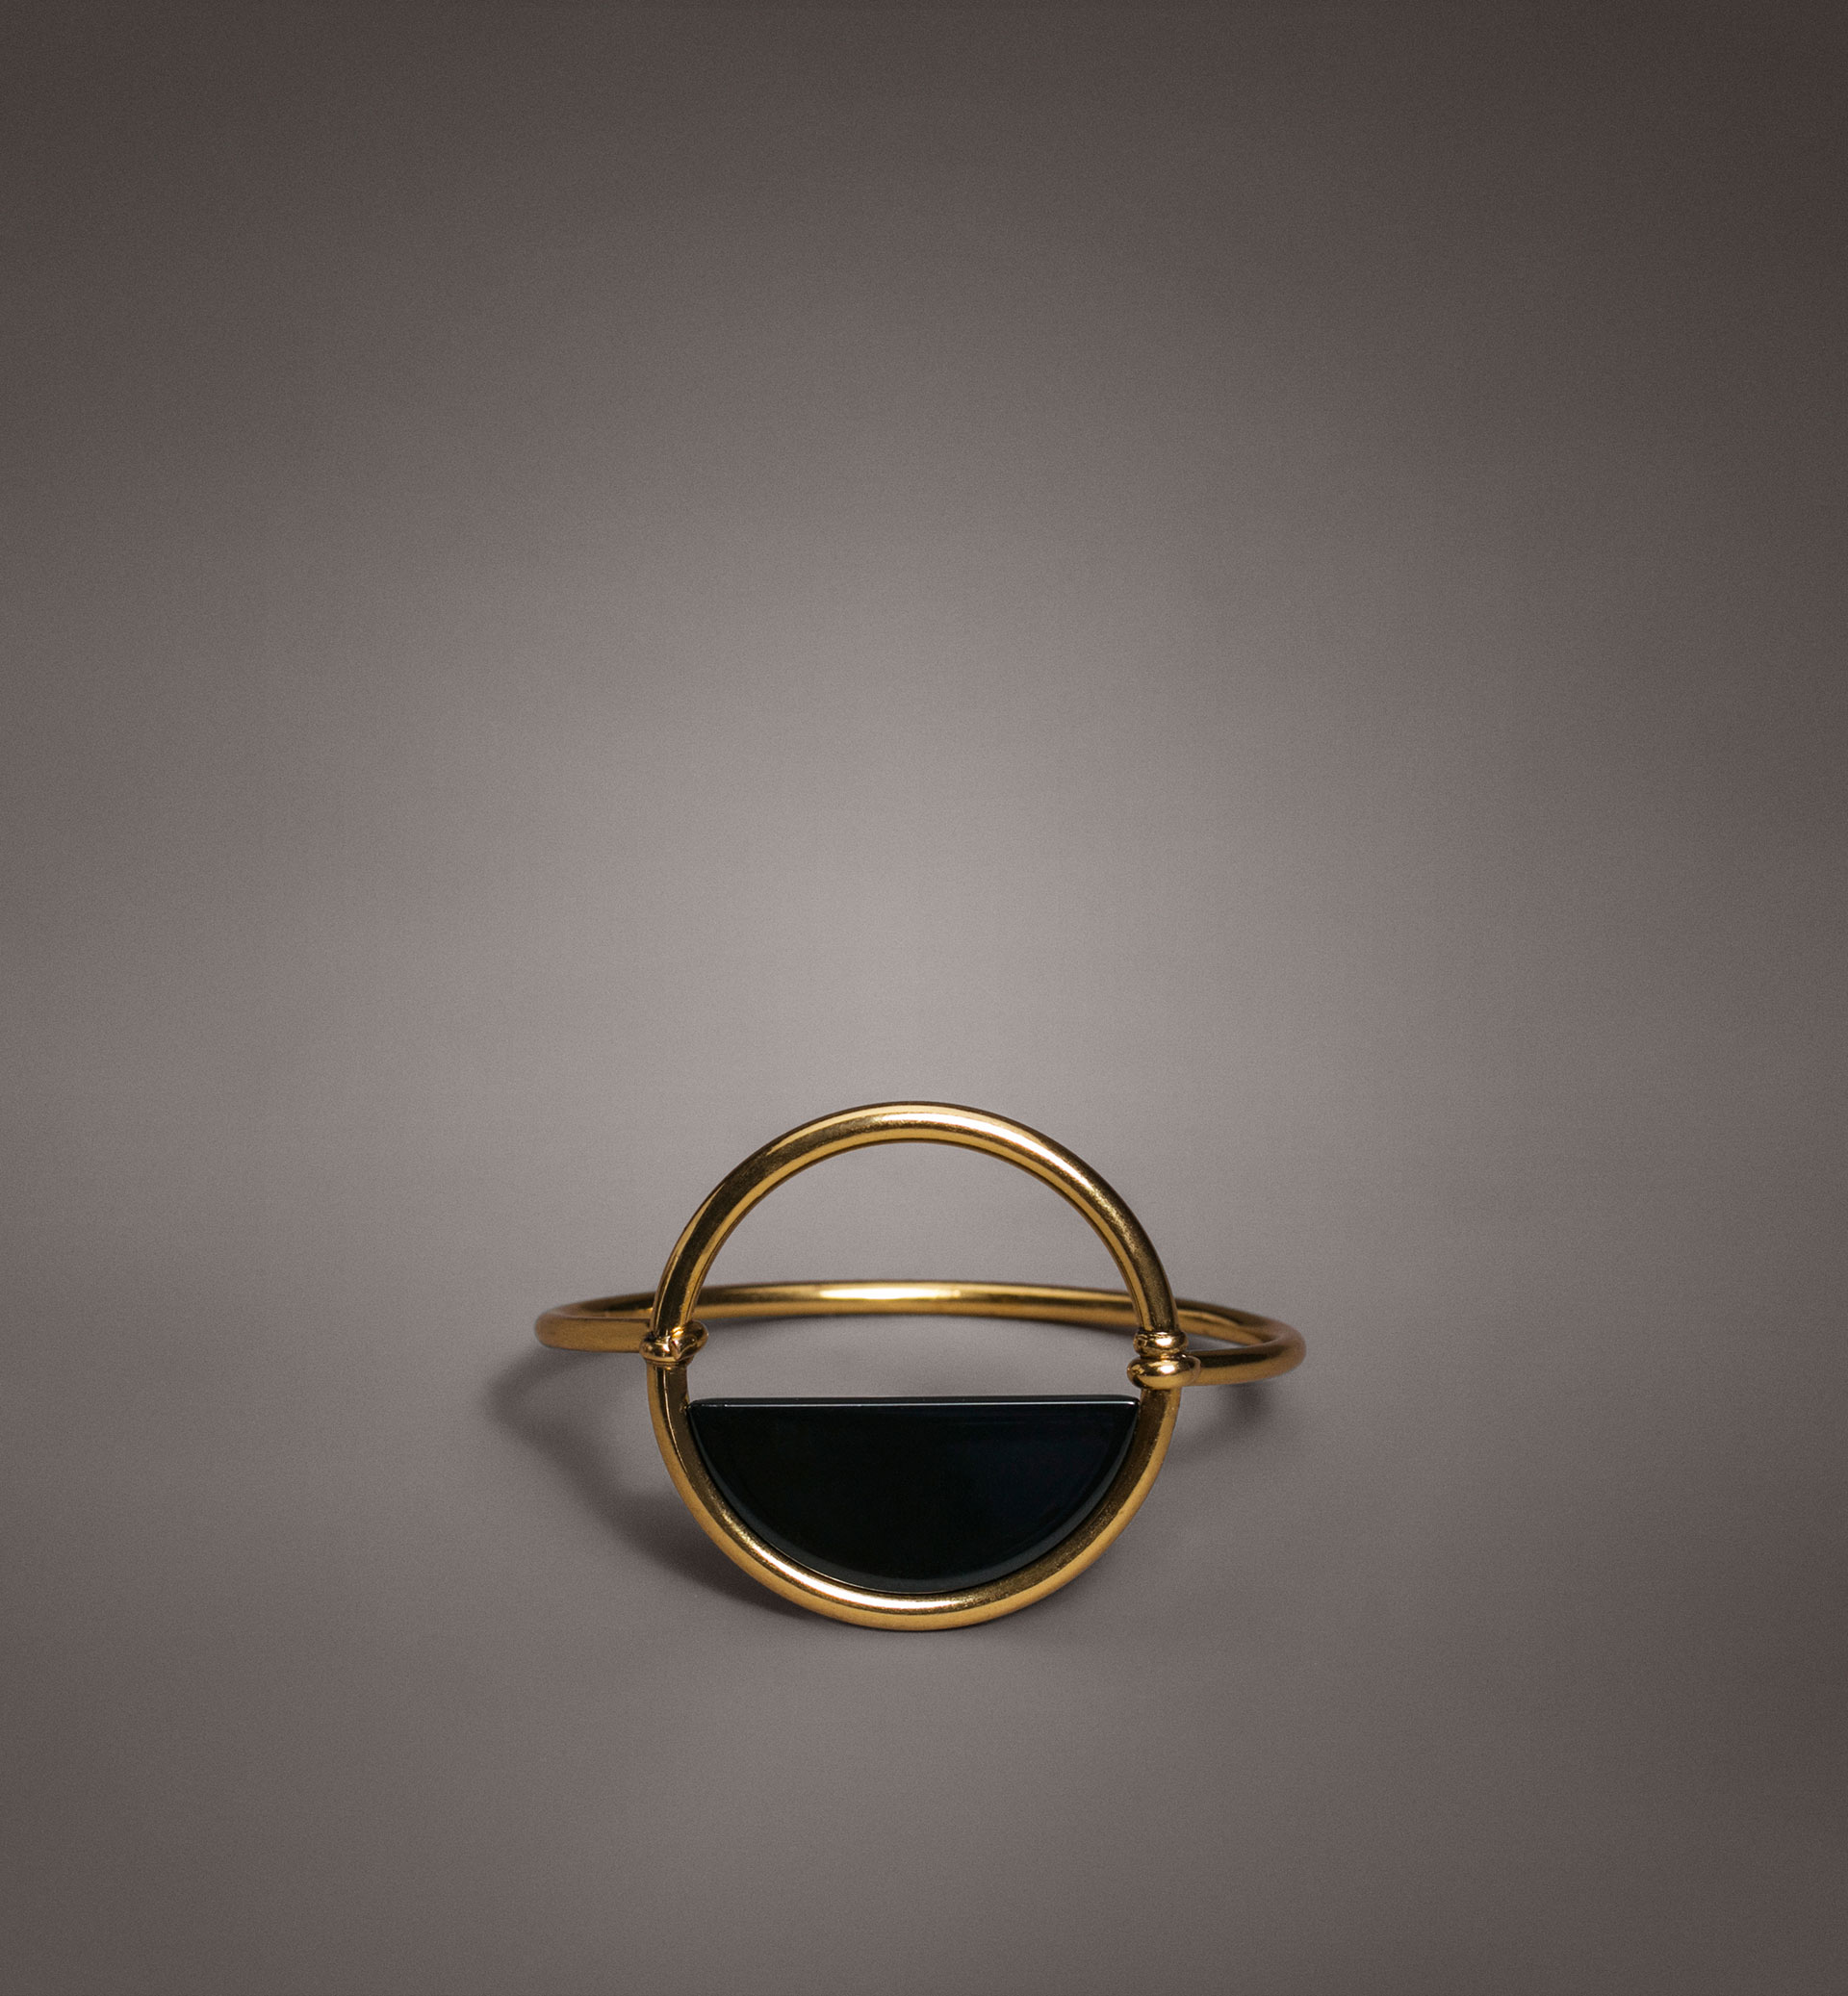 LIMITED EDITION CIRCULAR AND ENAMEL DETAIL BRACELET